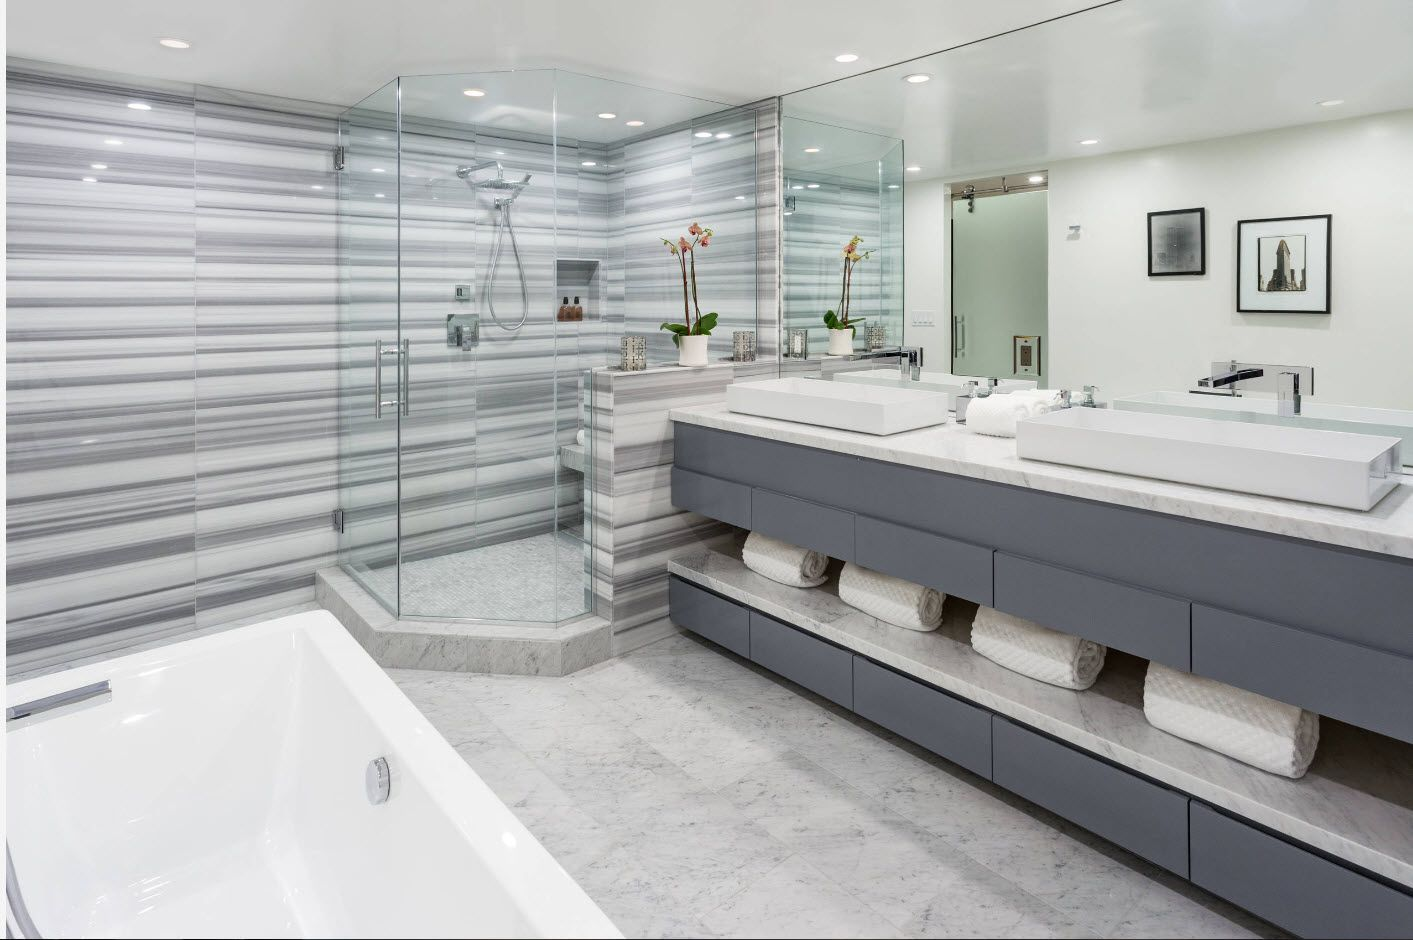 Gorgeous large bathroom with marble streaked wall design and nobke gray modular vanity